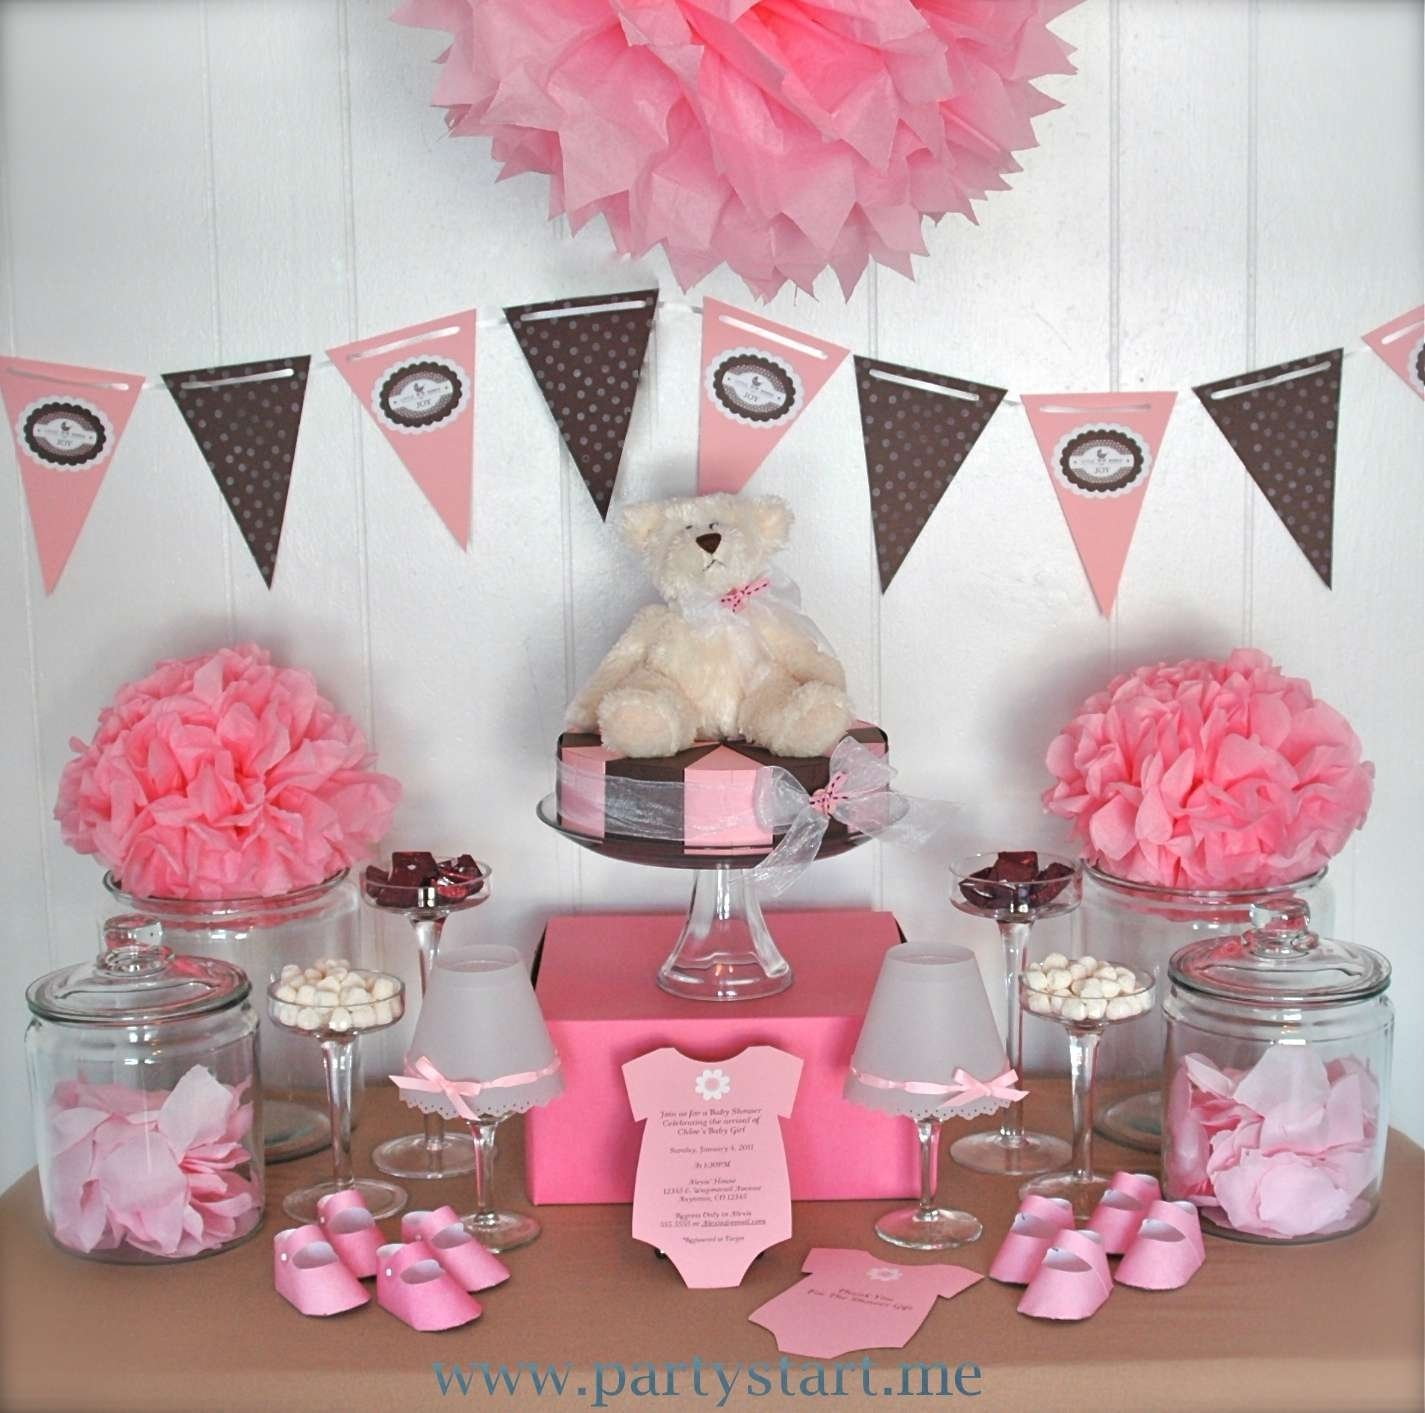 10 Nice Baby Shower Ideas For Girls Decorations baby shower food ideas monkey decorations cute clipgoo how to 1